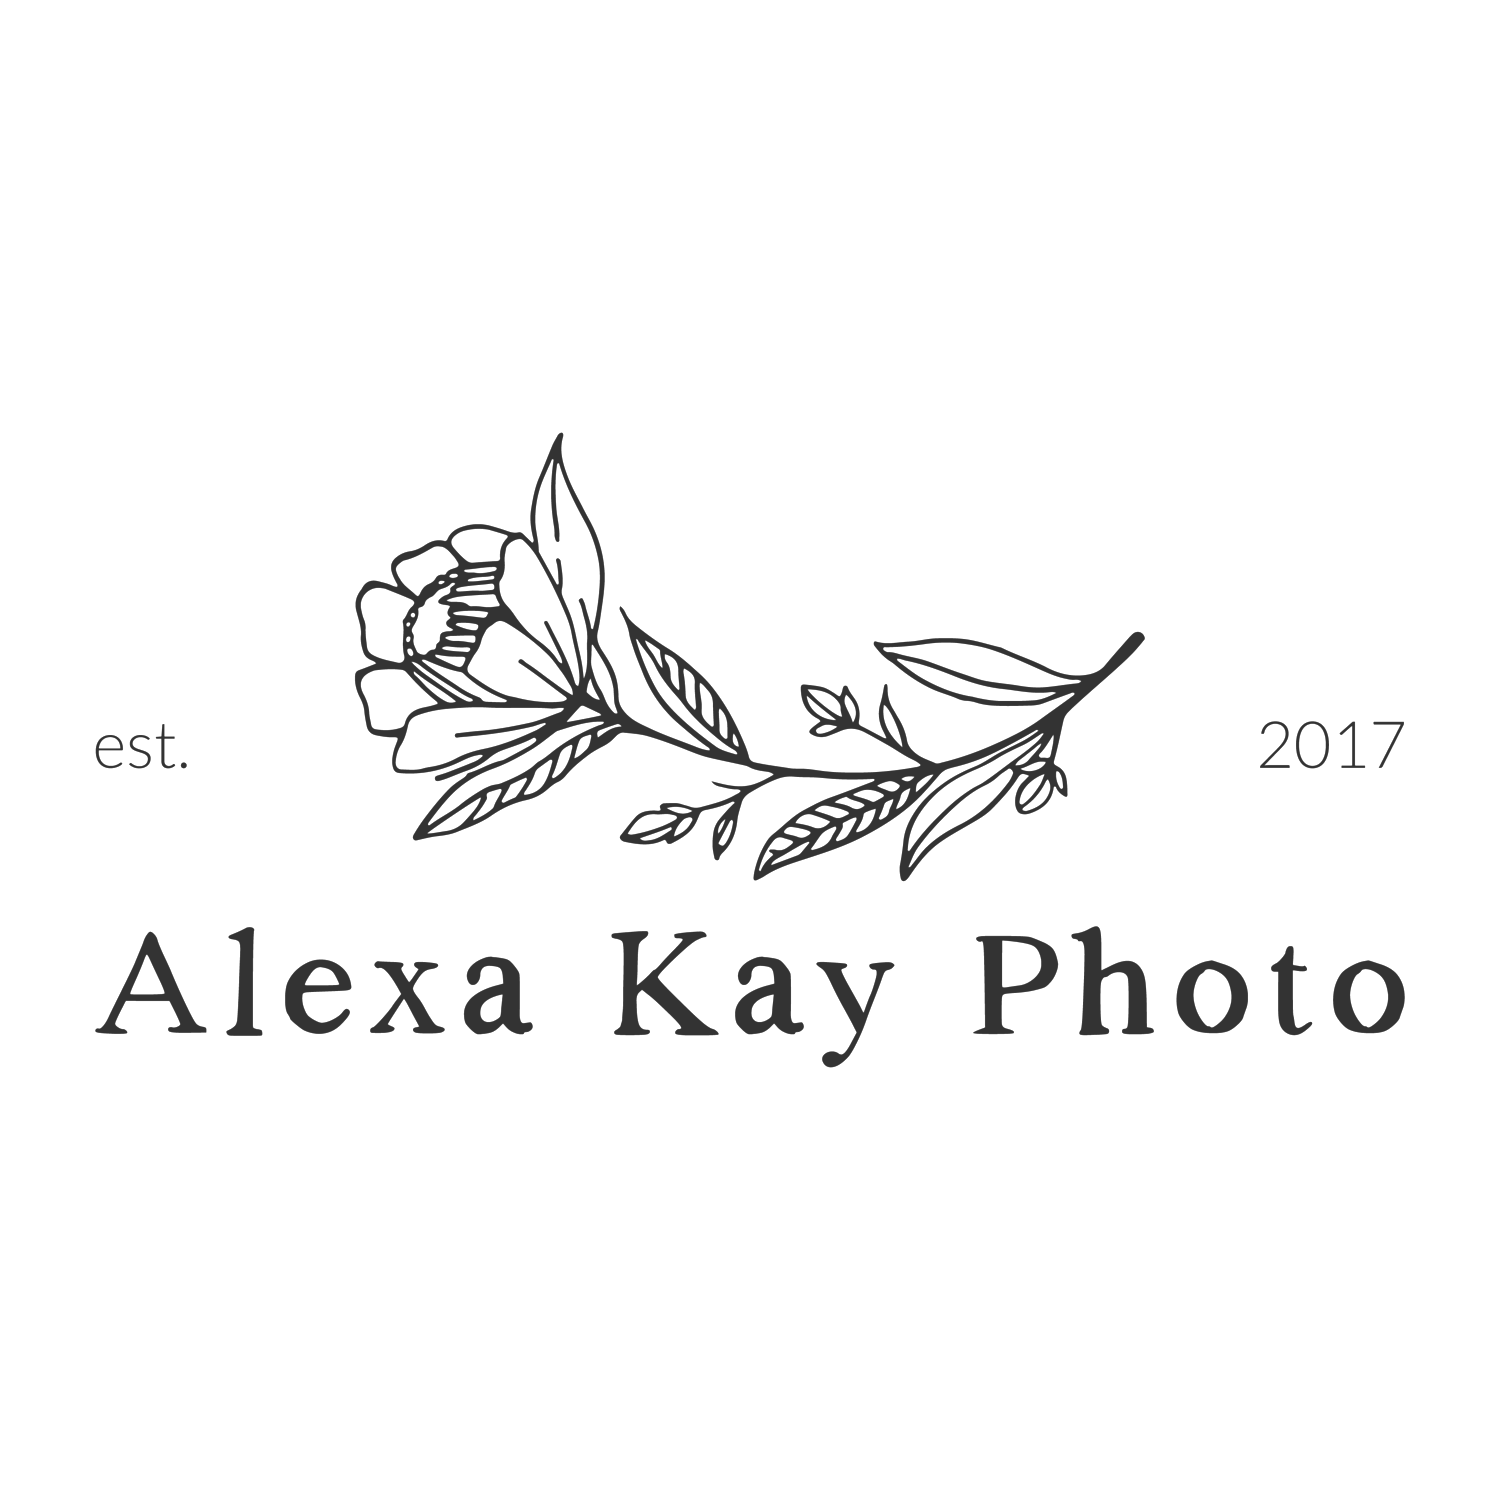 Alexa Kay Photo